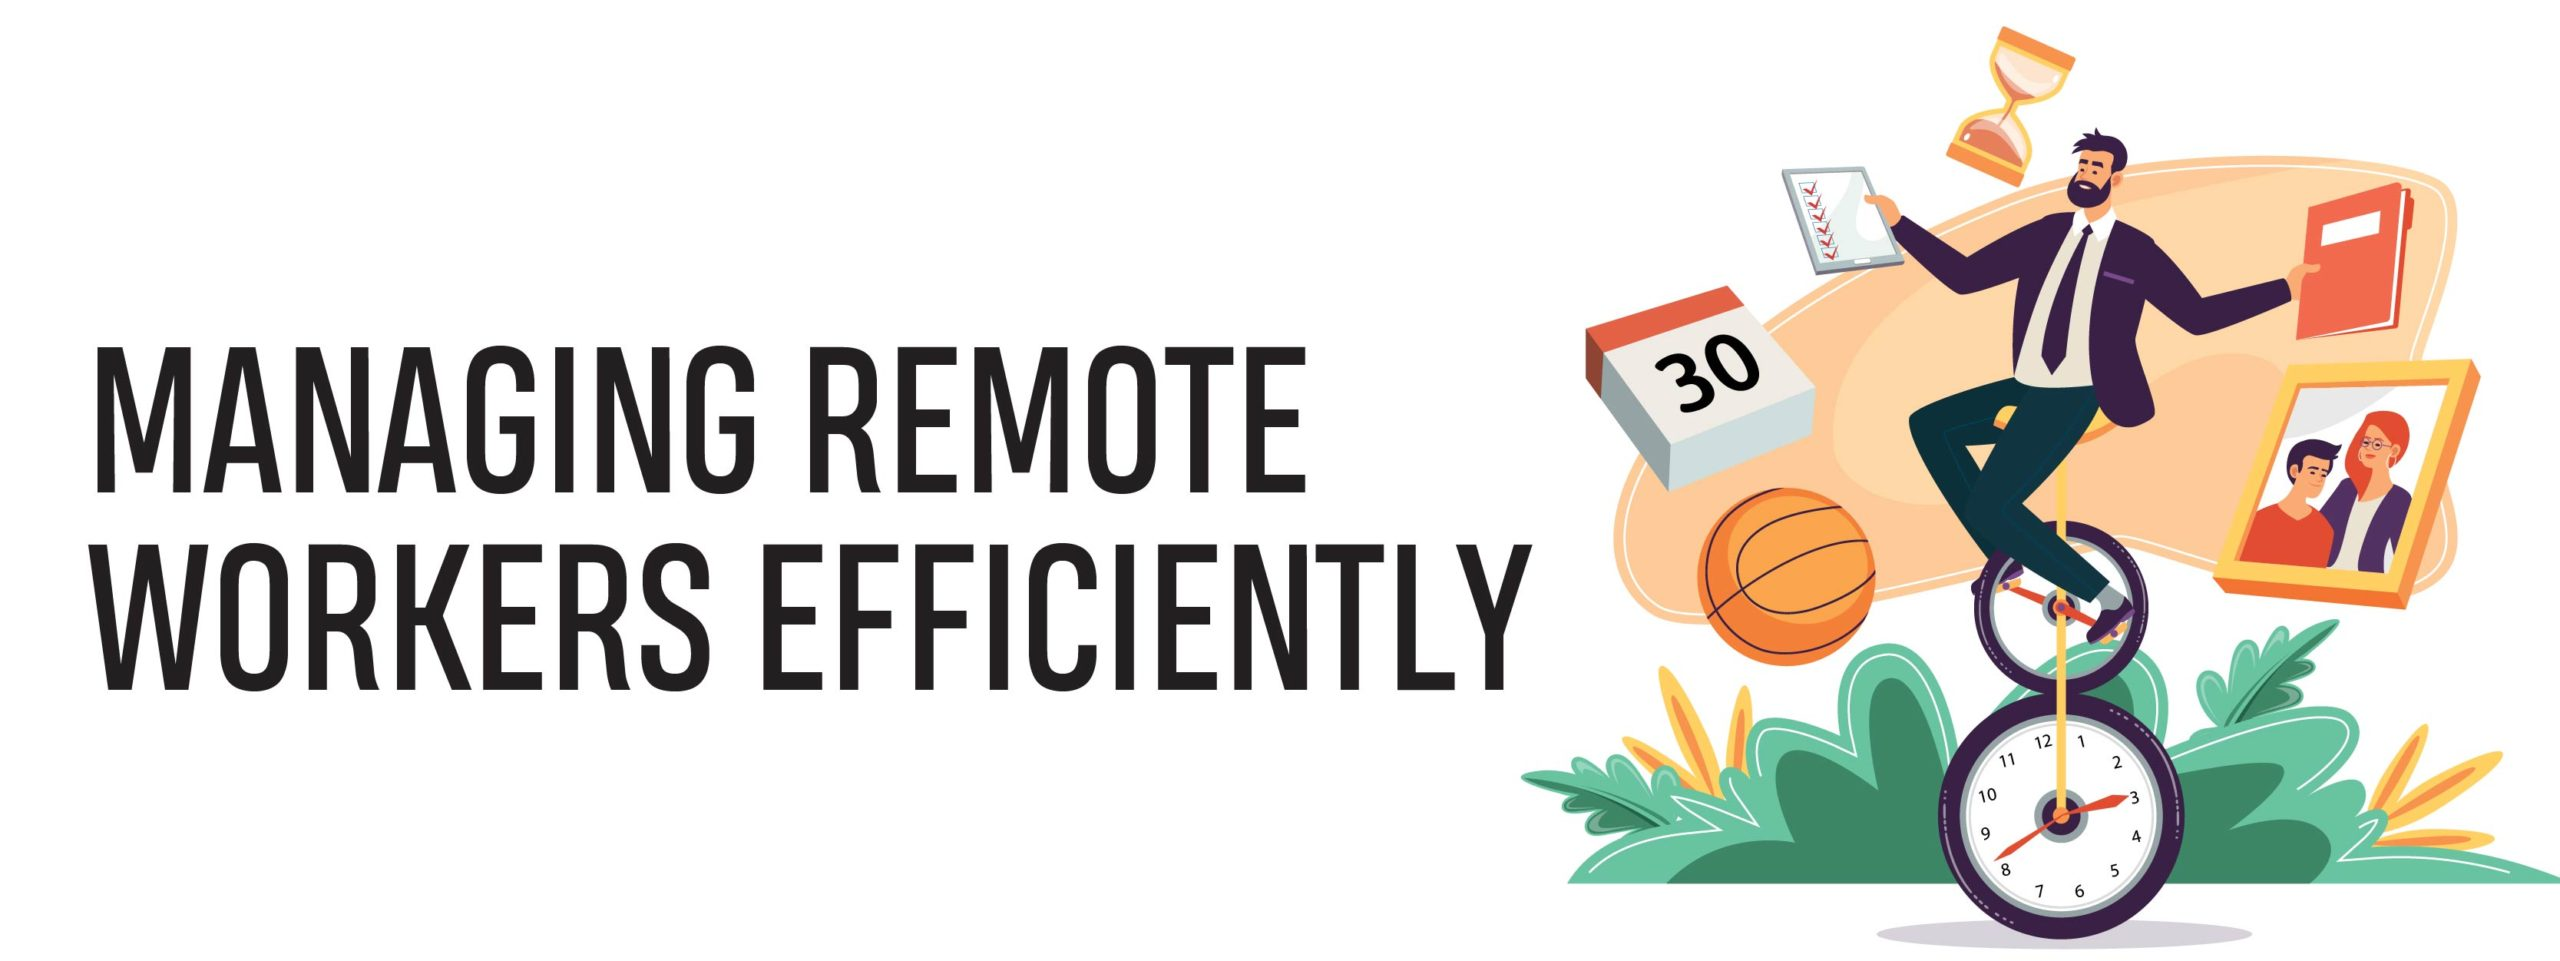 MANAGING REMOTE WORKERS EFFICIENTLY